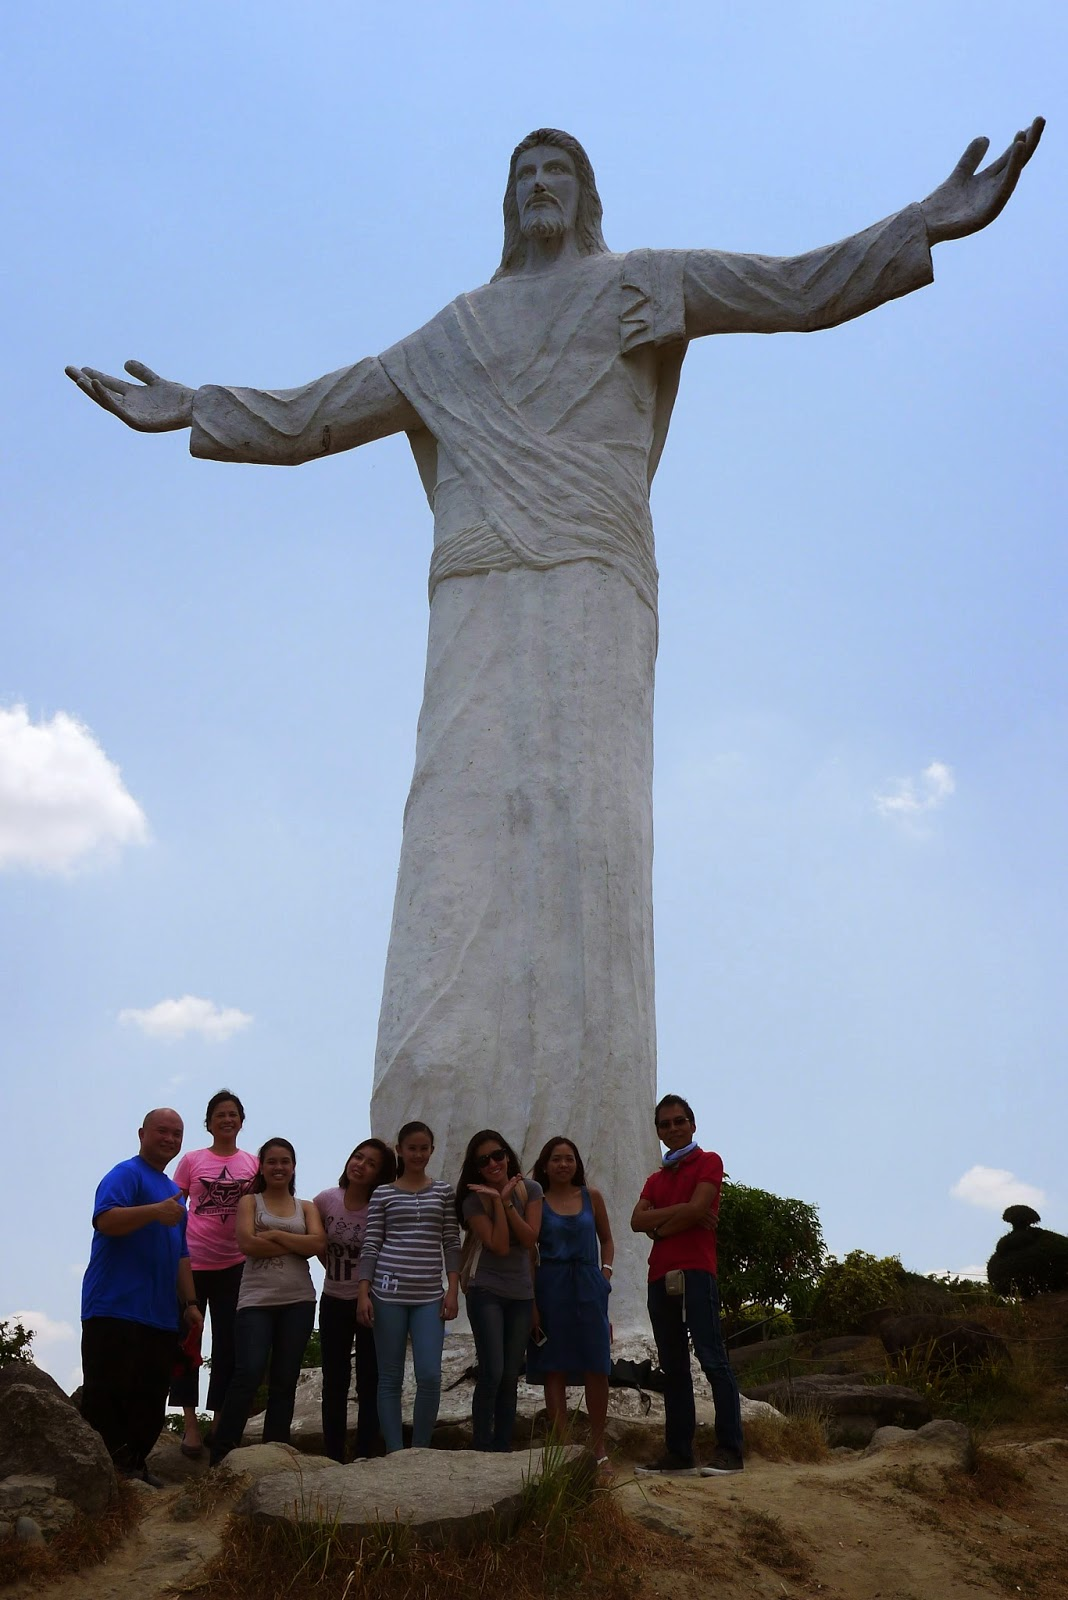 The 30-foot statue of the Risen Christ watches over visitors to Monasterio de Tarlac